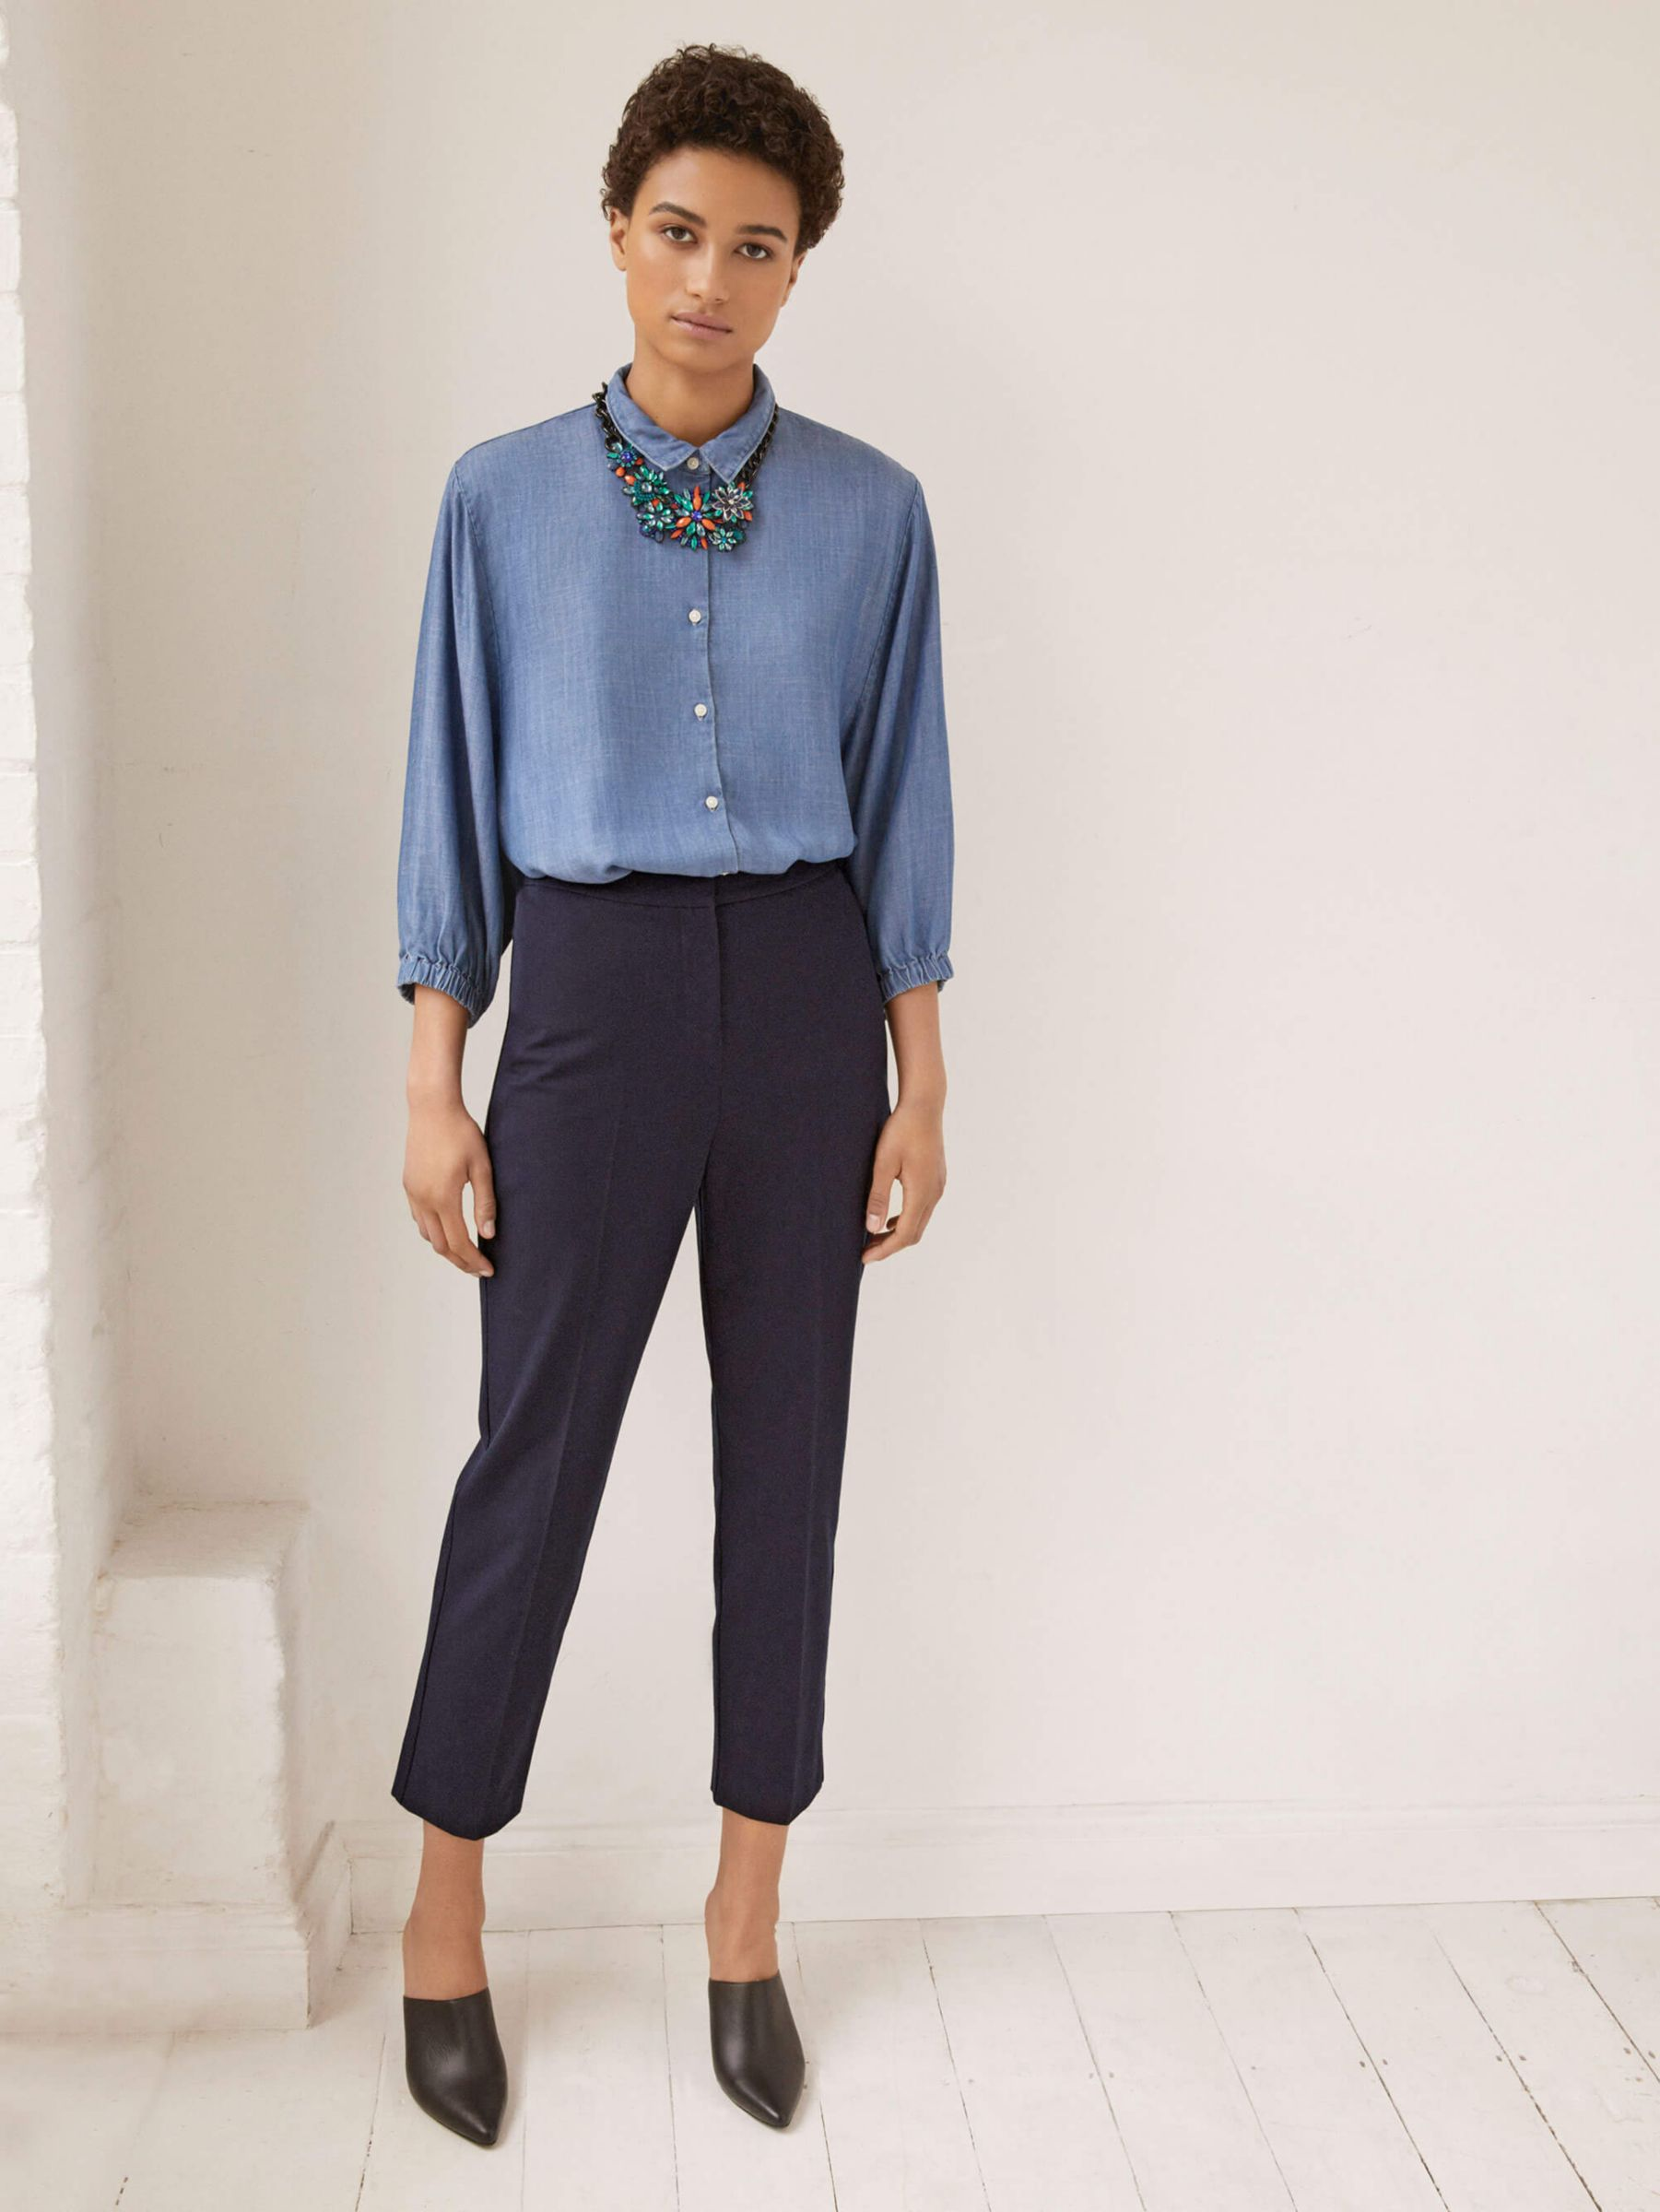 Woman in denim shirt and trousers